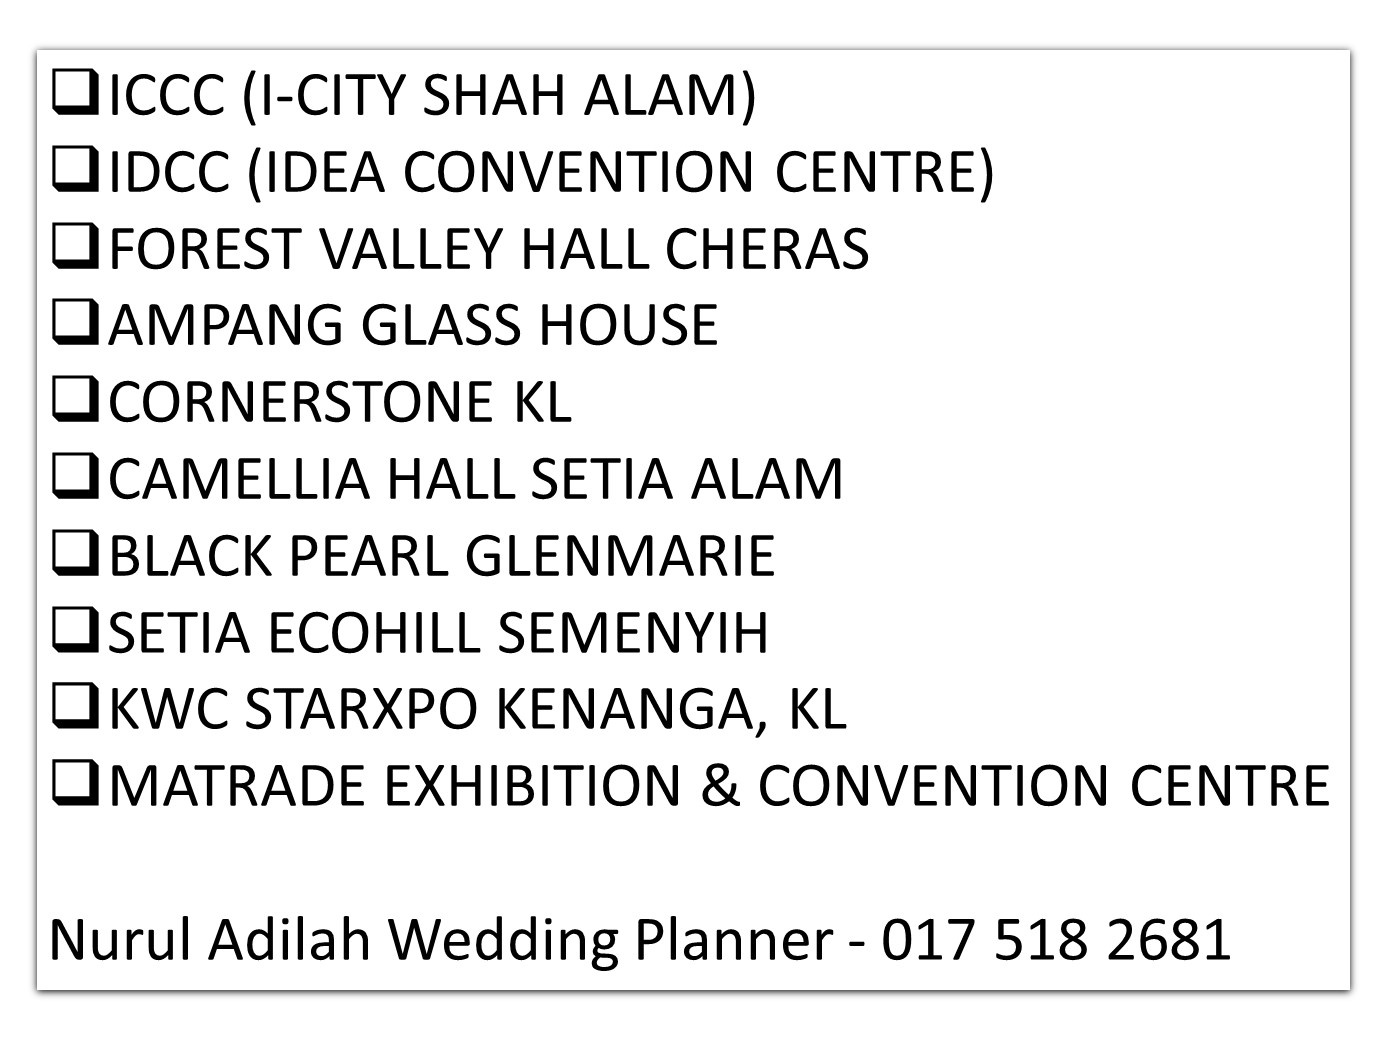 0175182681-nurul-adilah-wedding-planner-2020-2021